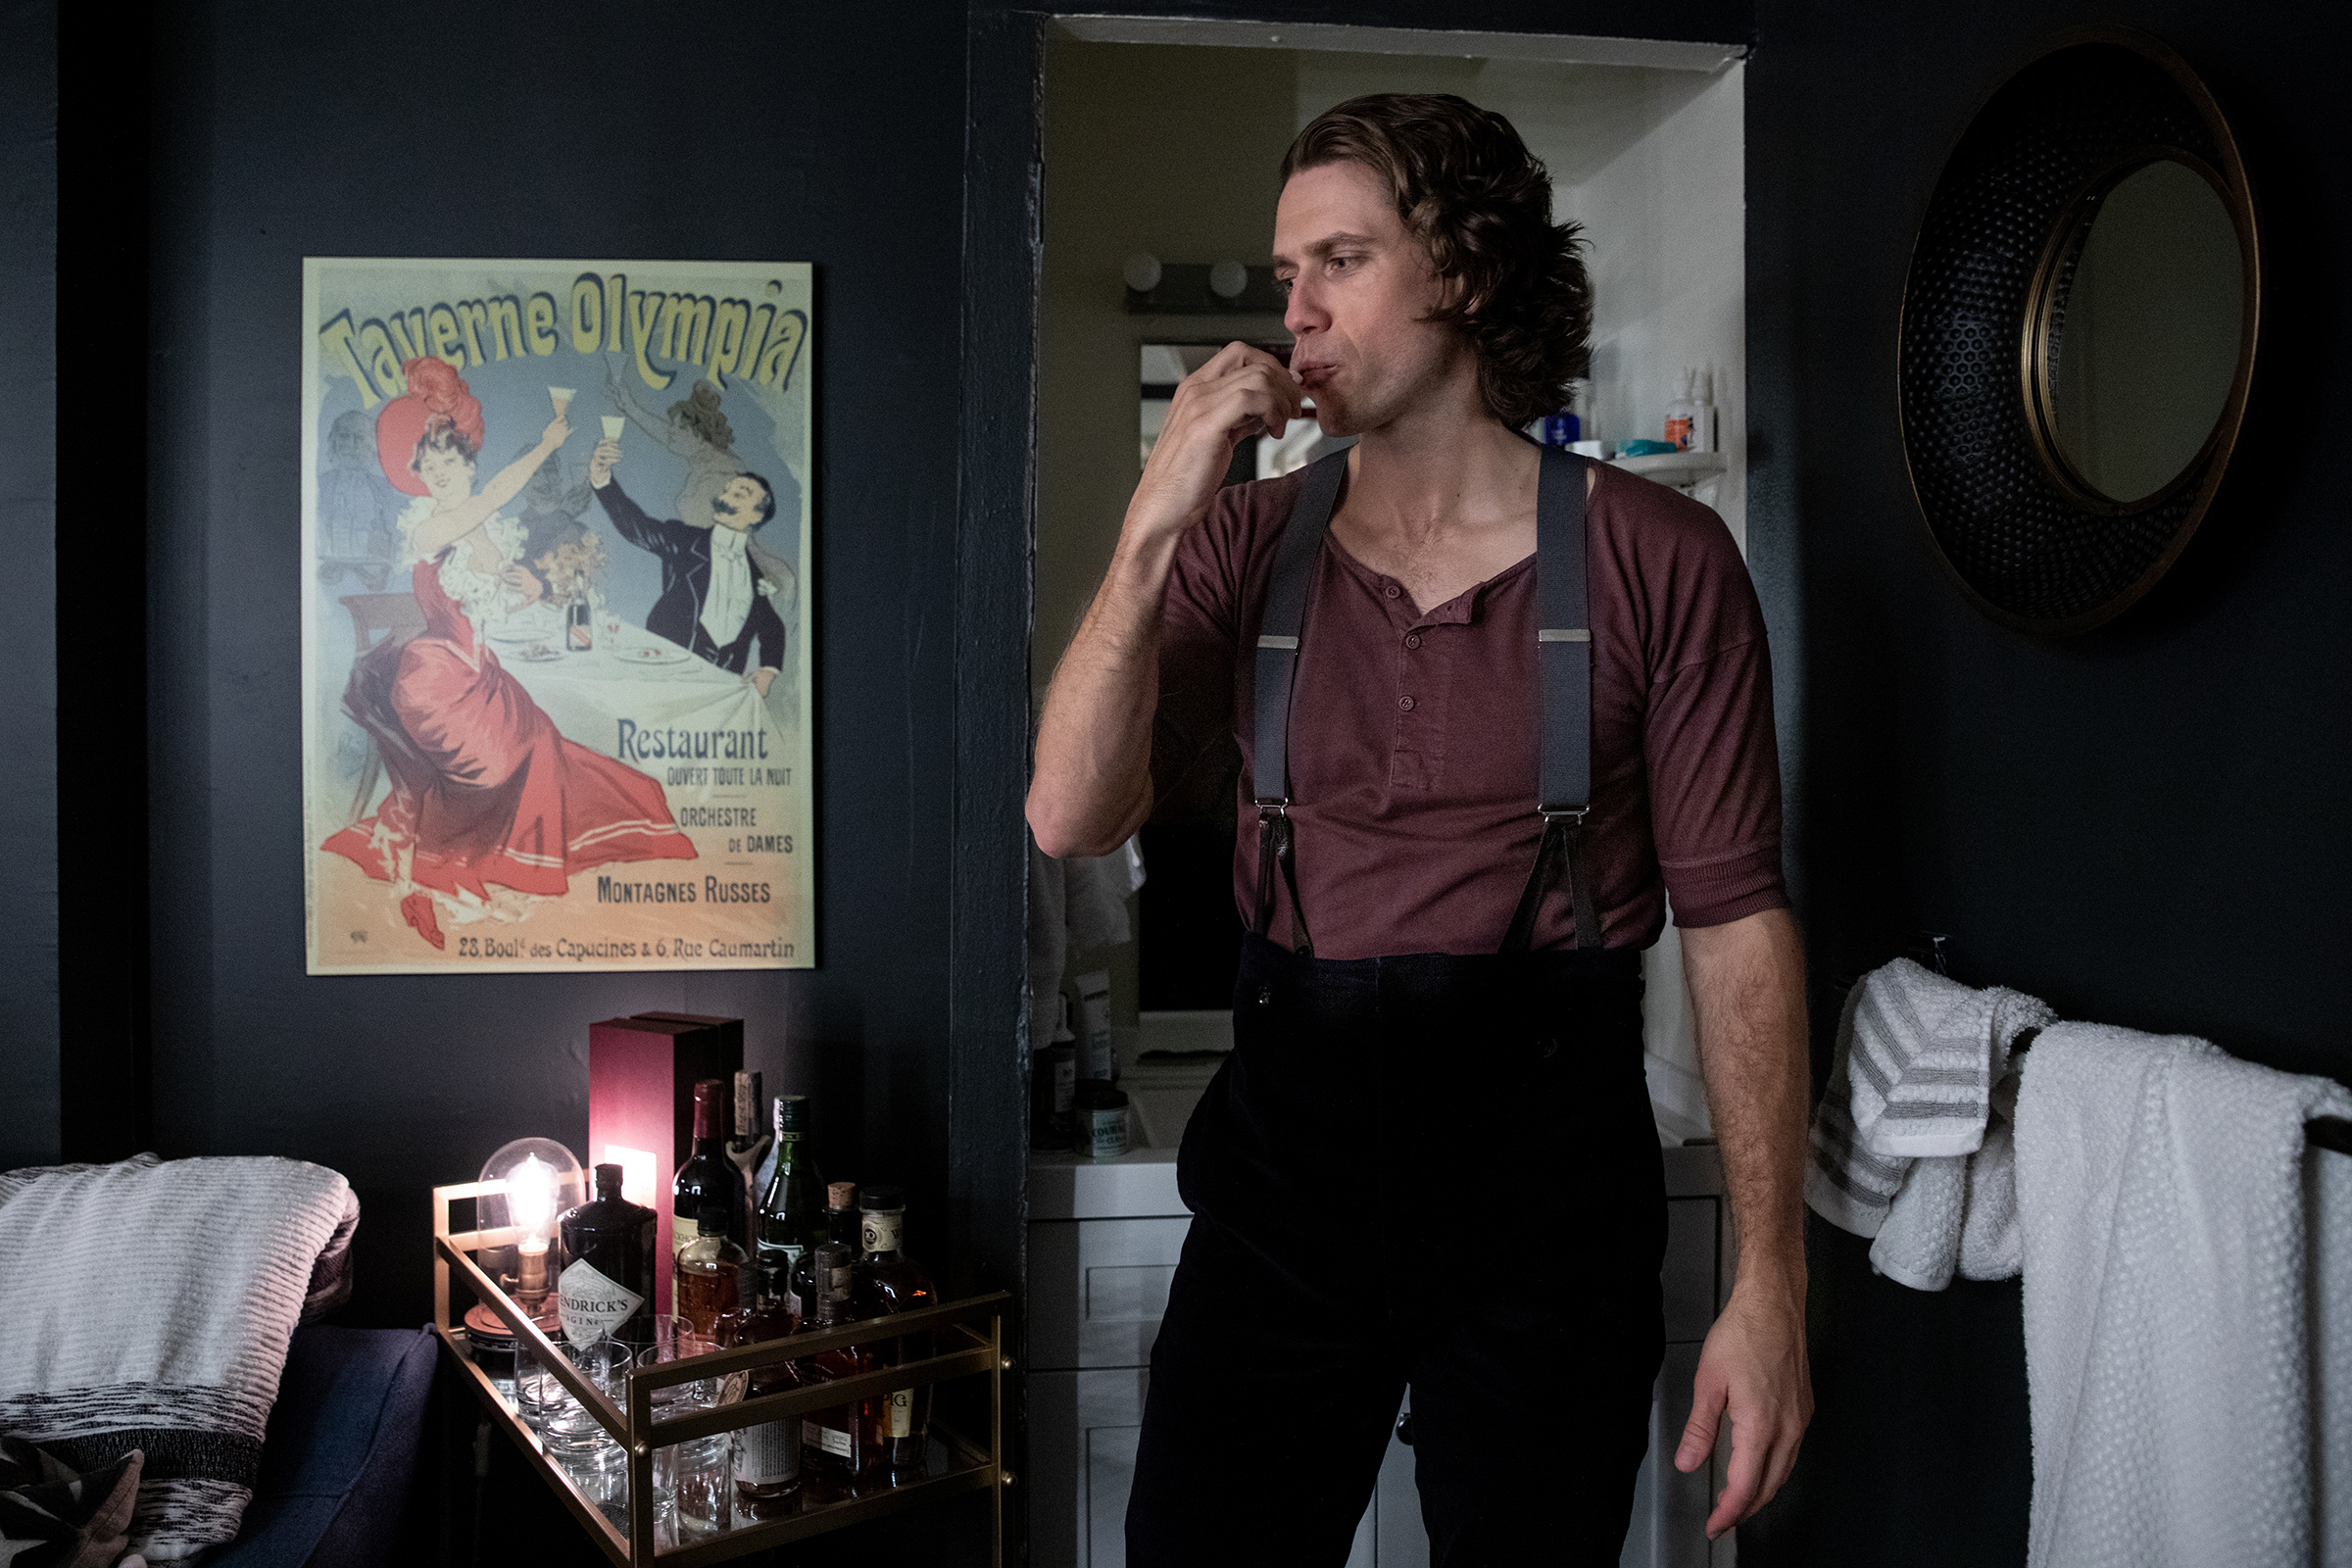 """Actor, Aaron Tveit brushing his teeth in his dressing room before a rehearsal on Sept. 21, 2021. Tveit was the only actor nominated for a 2020 Tony in the category of Best Leading Actor in a Musical for his role as Christian. When asked how he feels about re-opening night of Moulin Rouge! on Sept. 24, 2021, Tveit he mentions this isn't opening for him, """"this is performance number 263."""""""